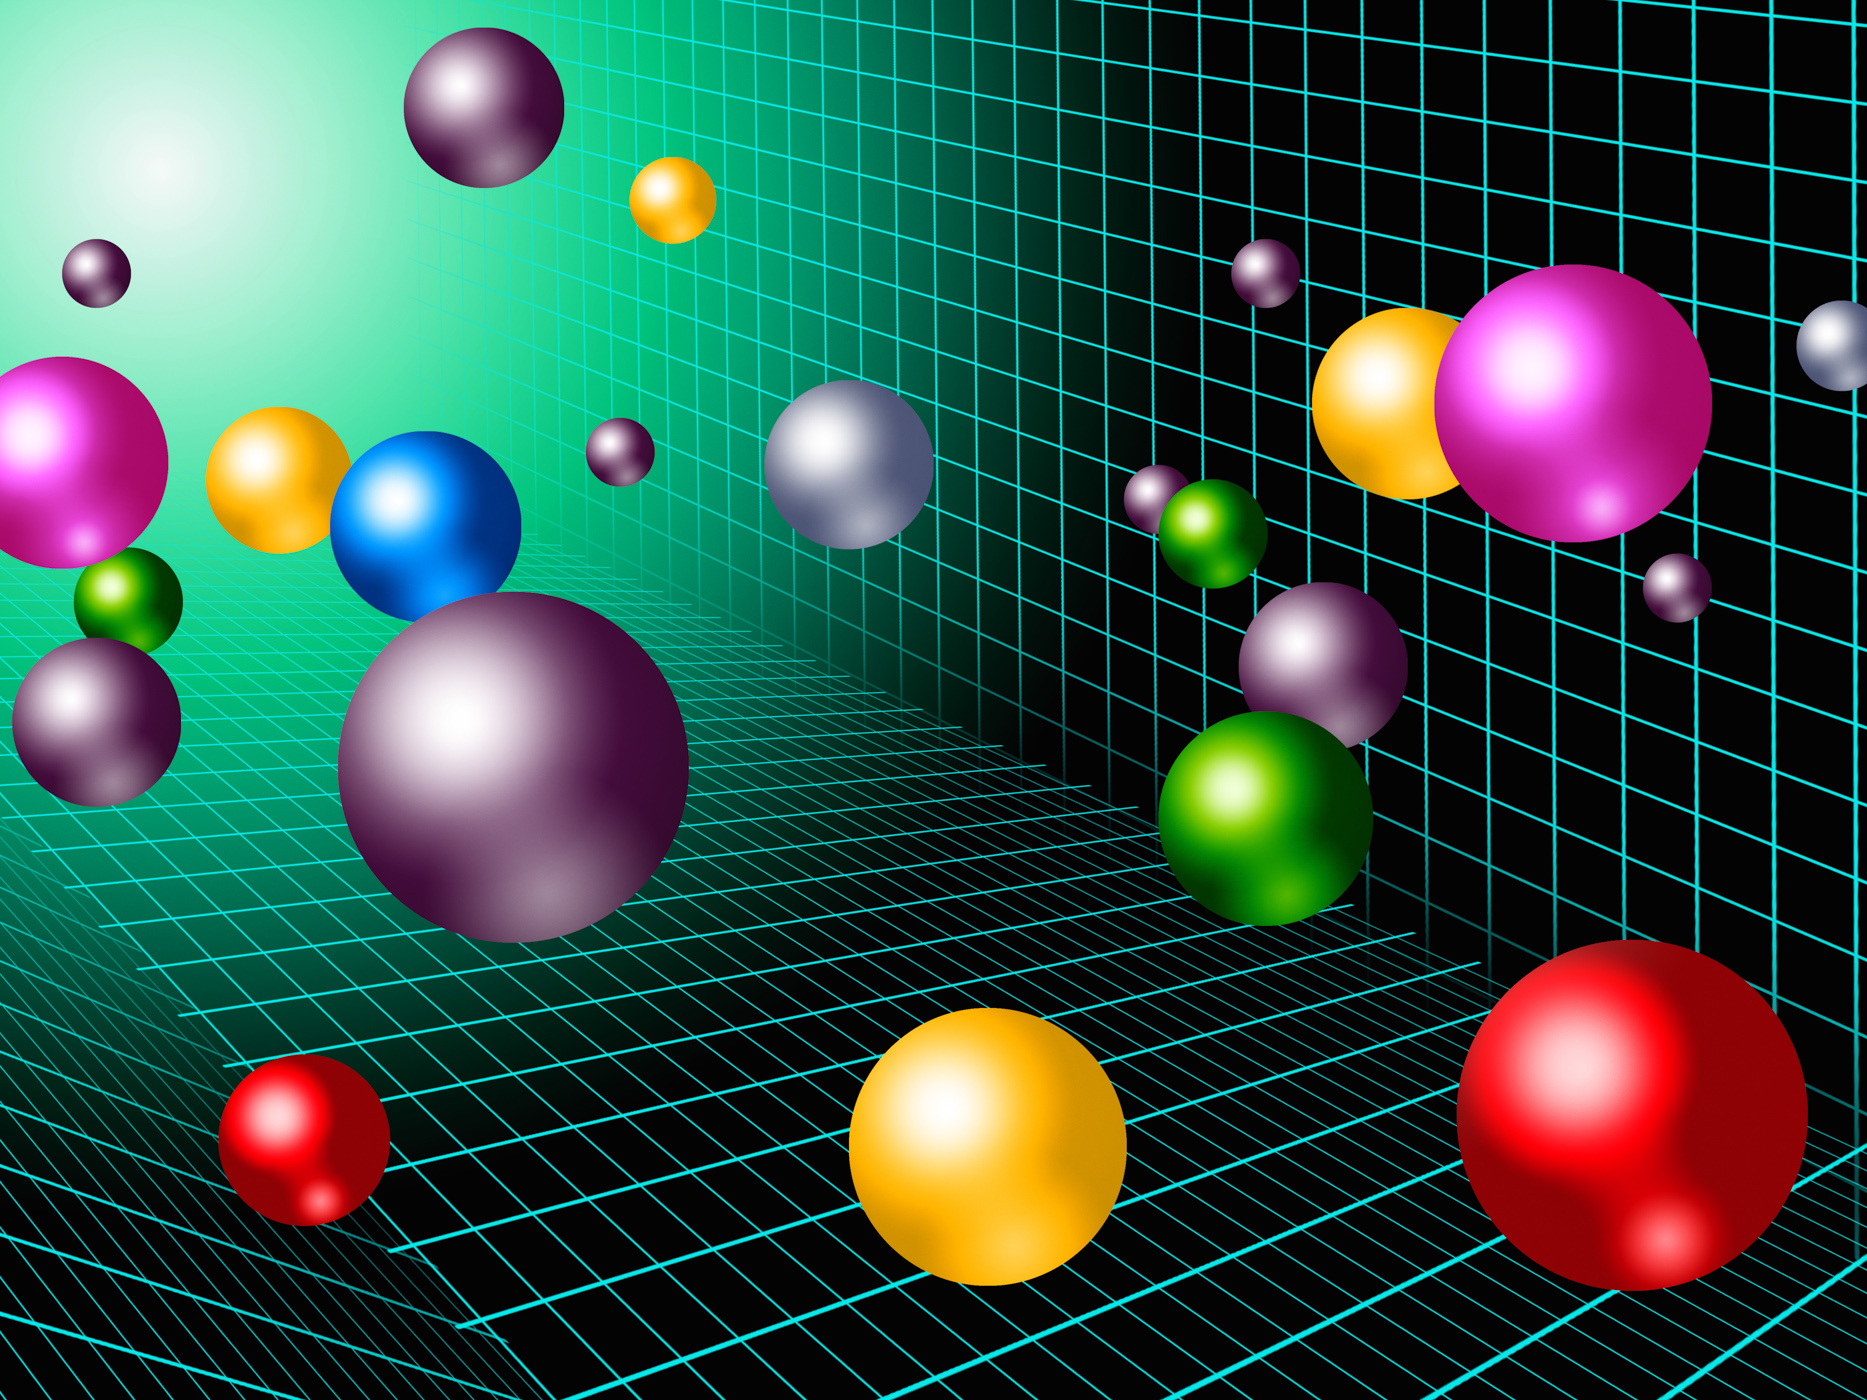 Colorful balls background shows rainbow circles and grid photo